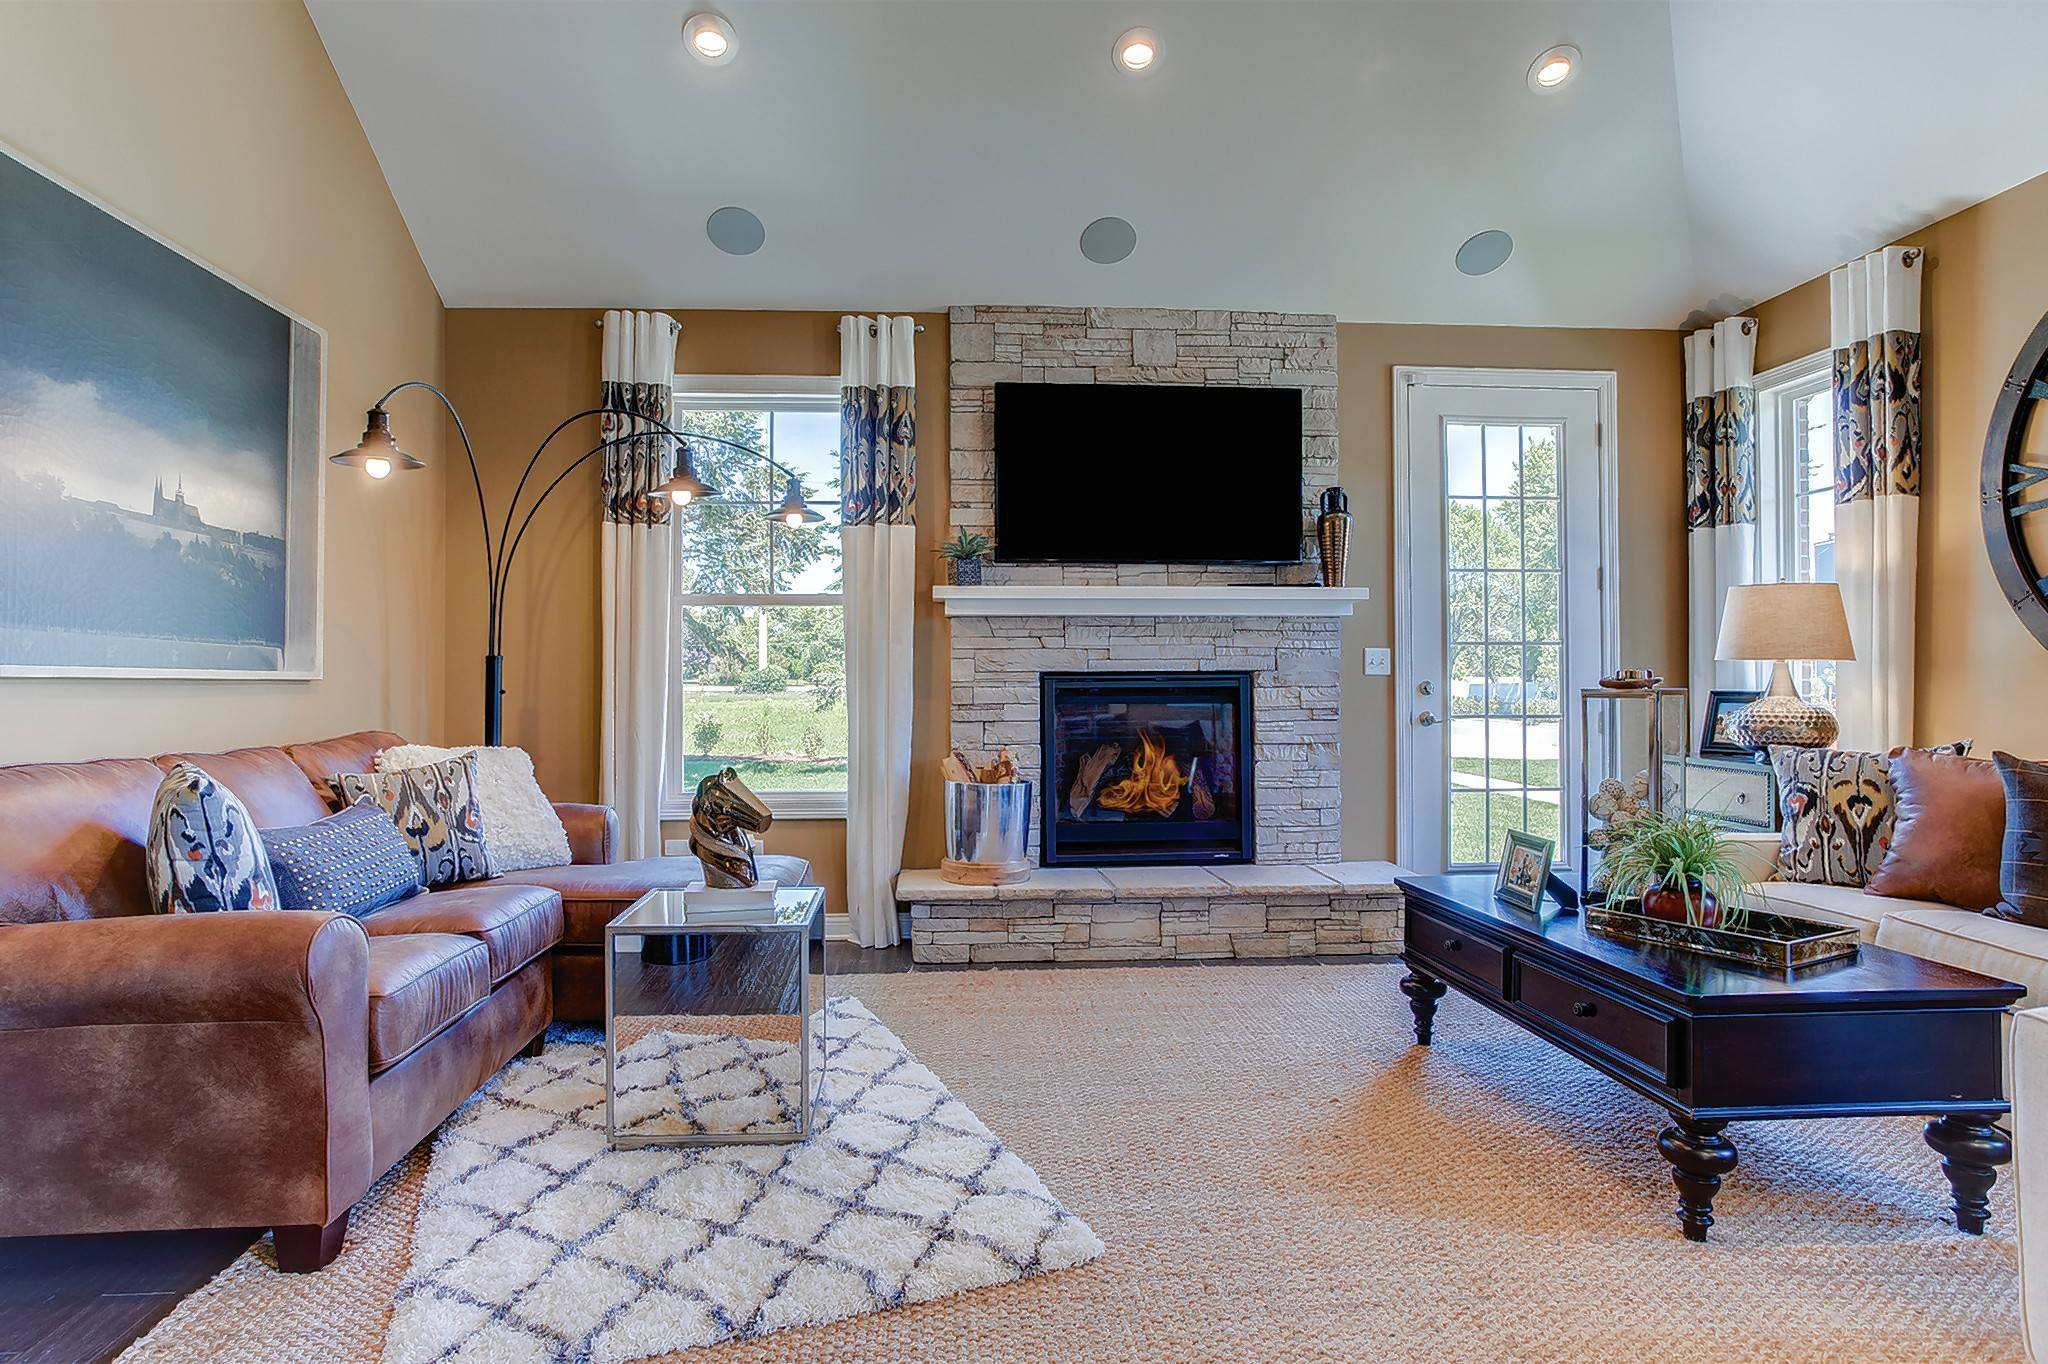 The duplexes the Villas At Trafford Place in Naperville are priced from $453,595 to $529,611.